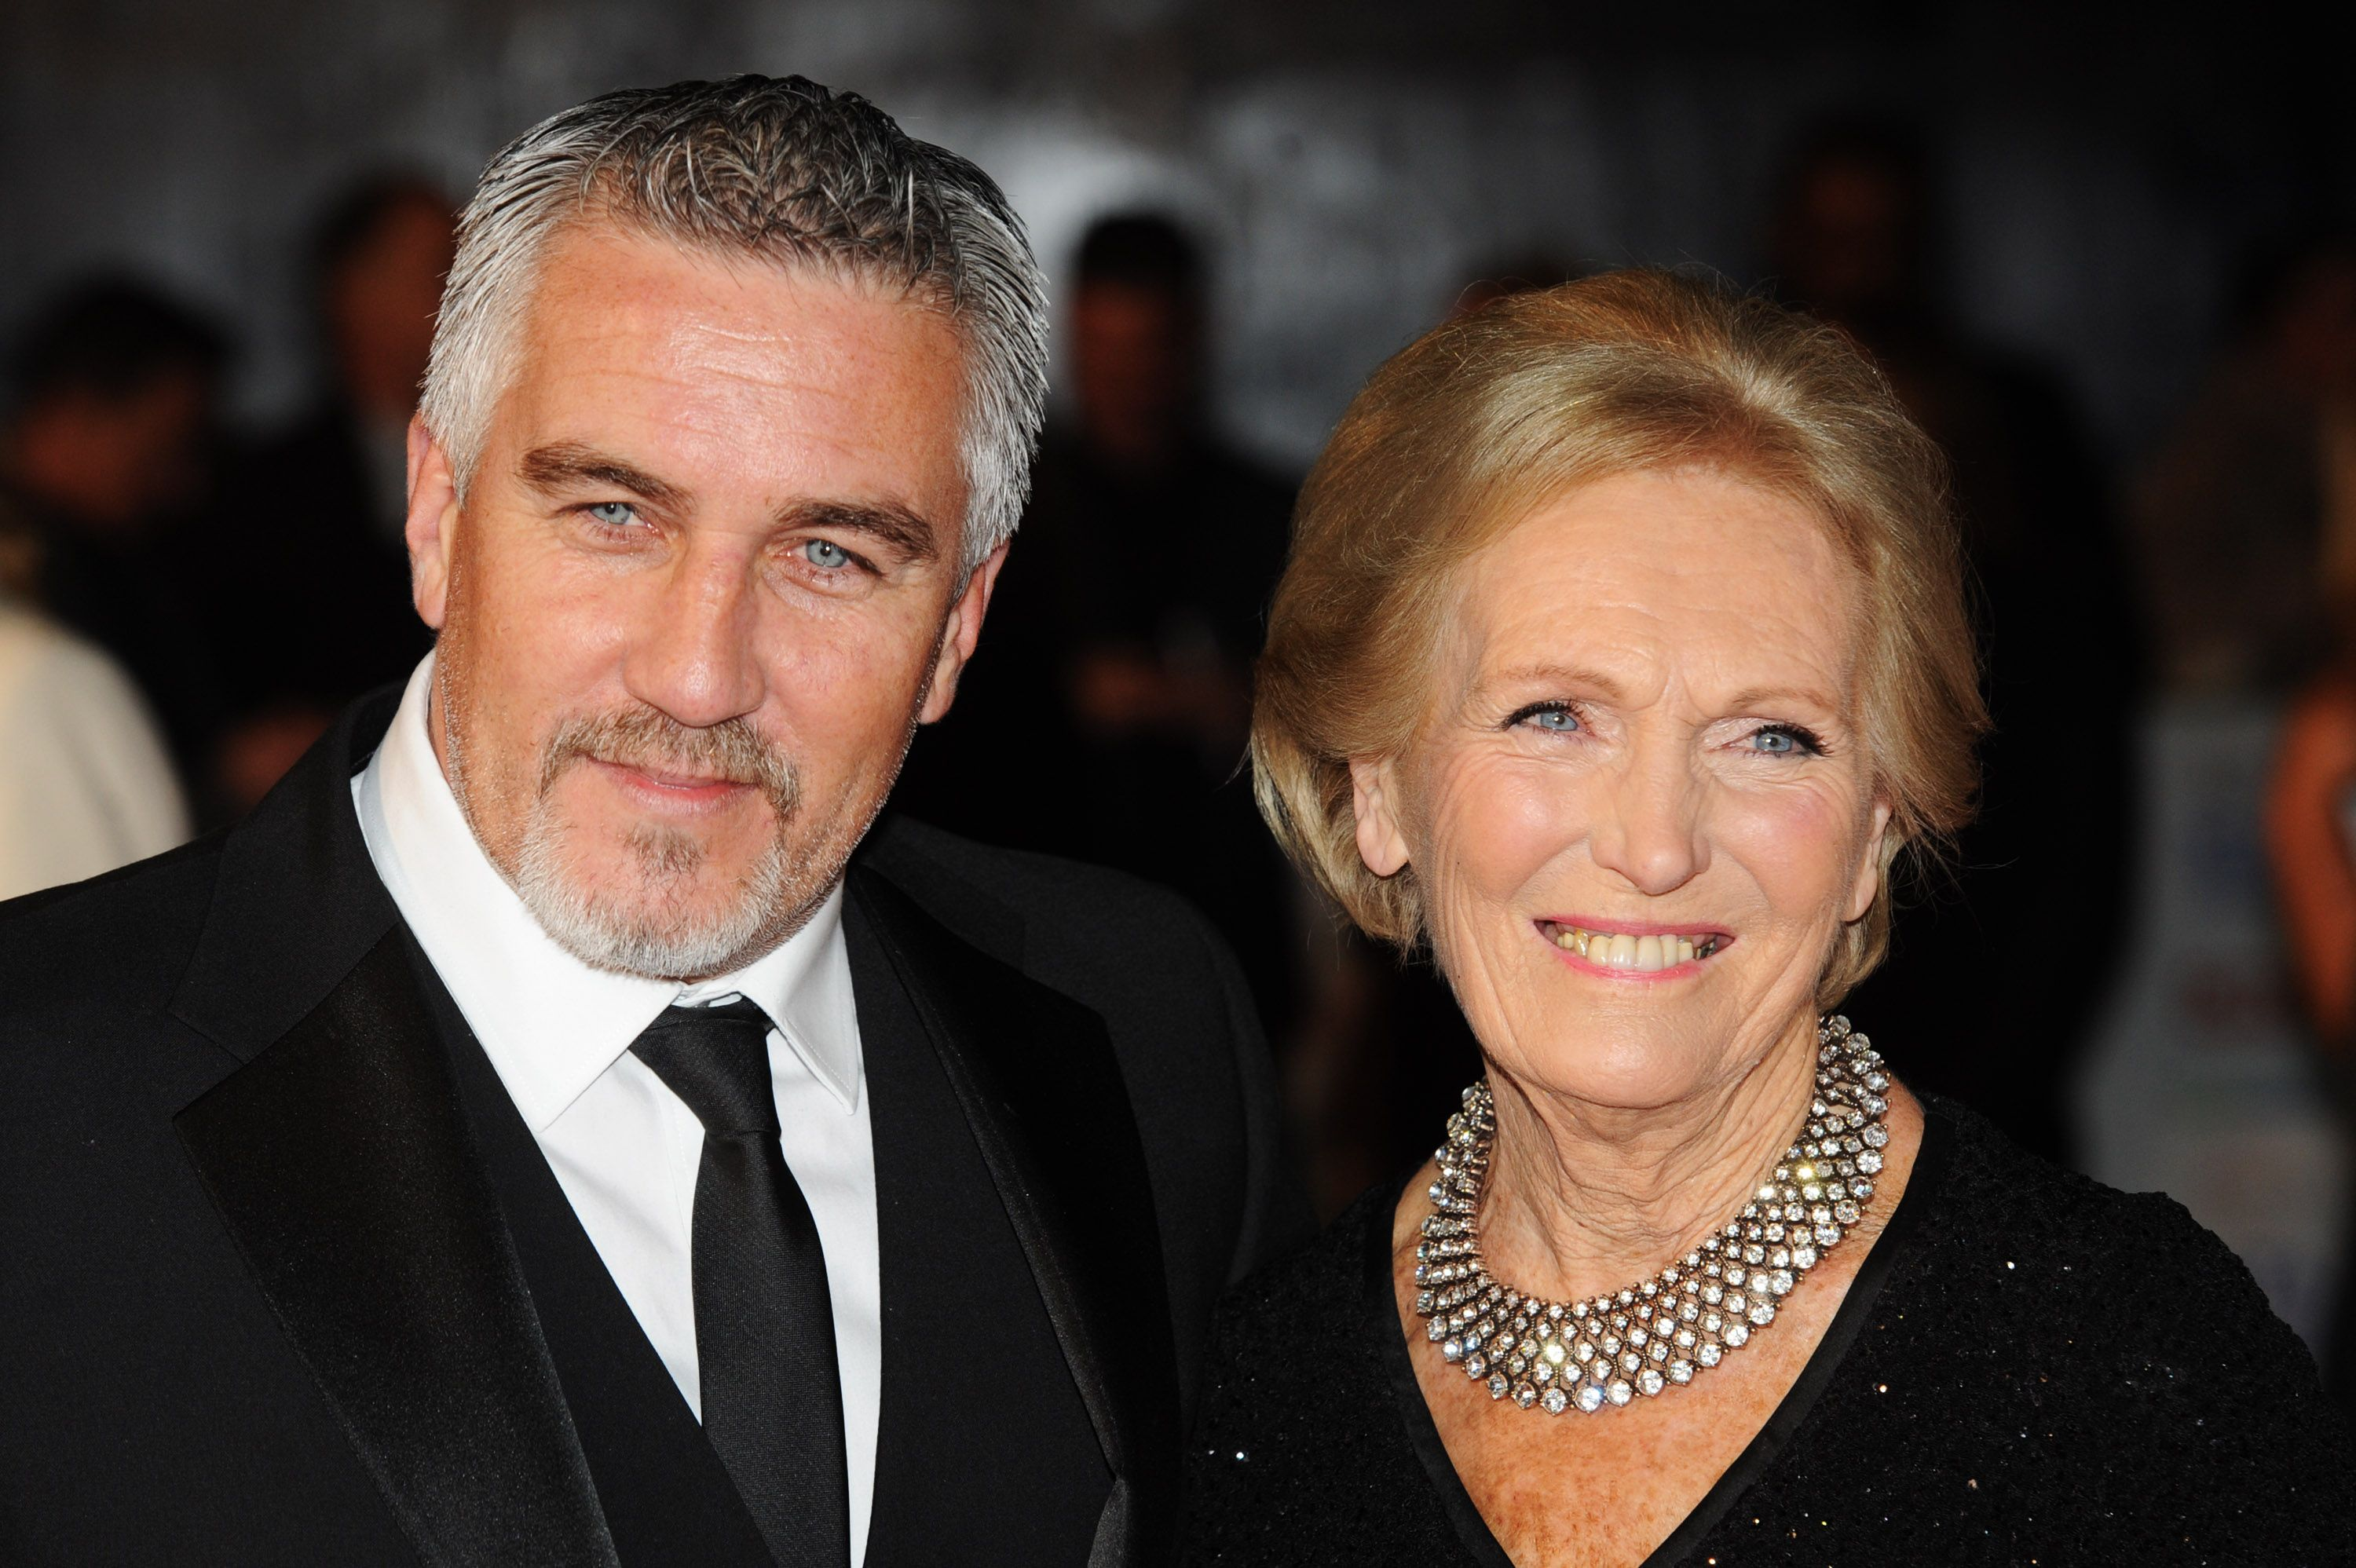 The Real Story Behind 'Great American Baking Show' Stars Paul Hollywood and Mary Berry's Relationship